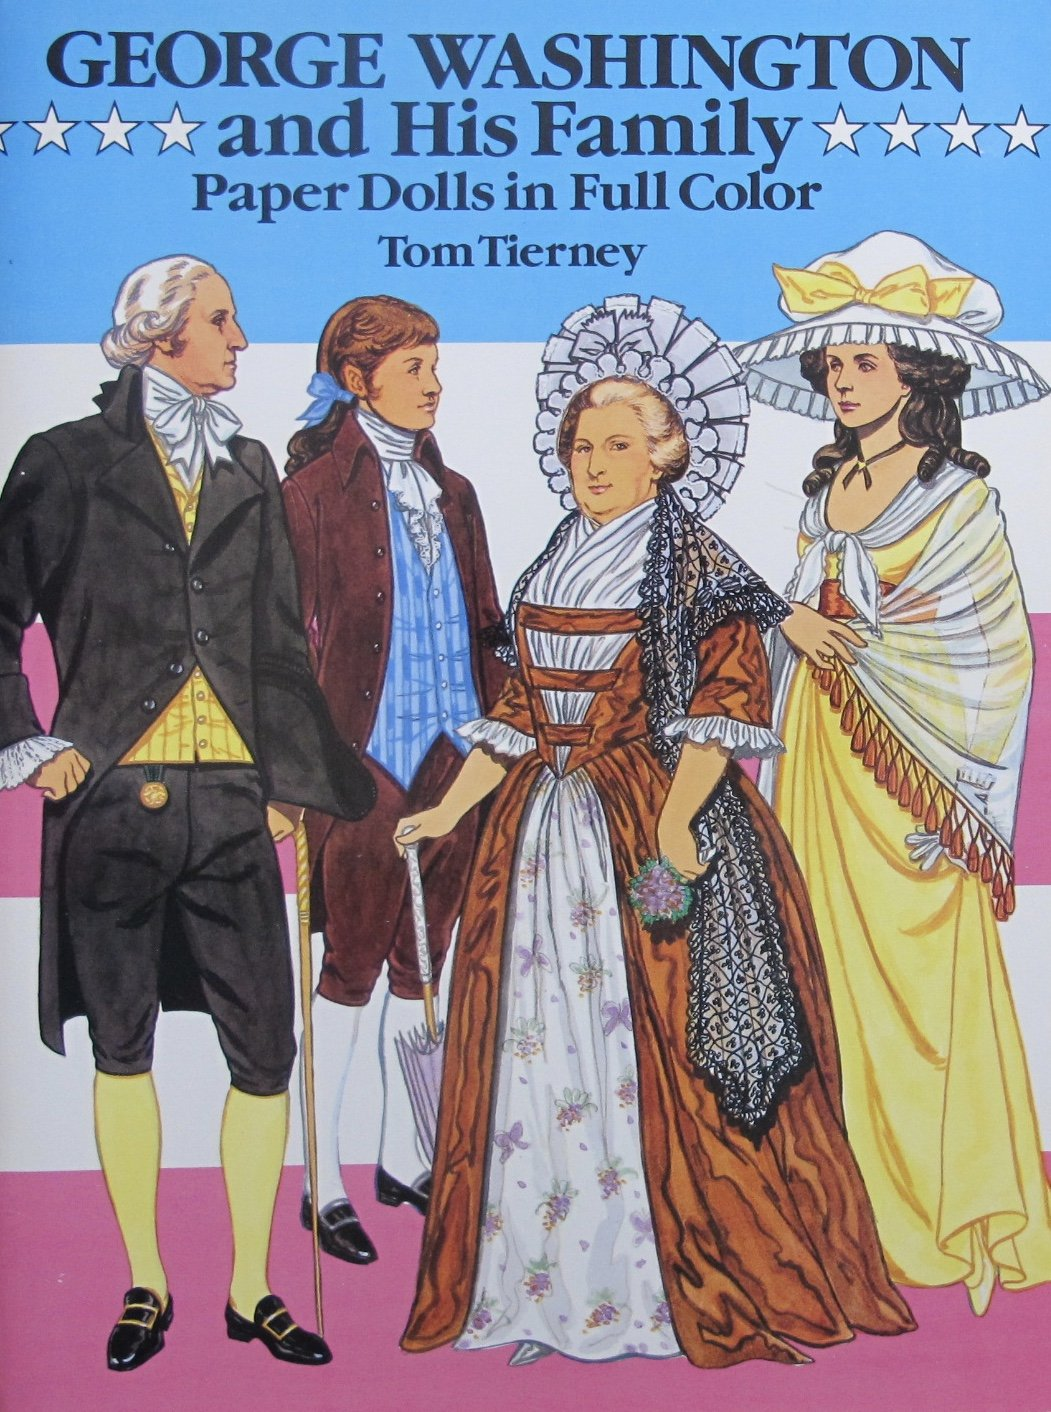 Tom Tierney GEORGE WASHINGTON and His FAMILY PAPER DOLLS in Full COLOR BOOK (UNCUT) w 6 Card Stock DOLLS & 32 COSTUMES (1989 Dover)